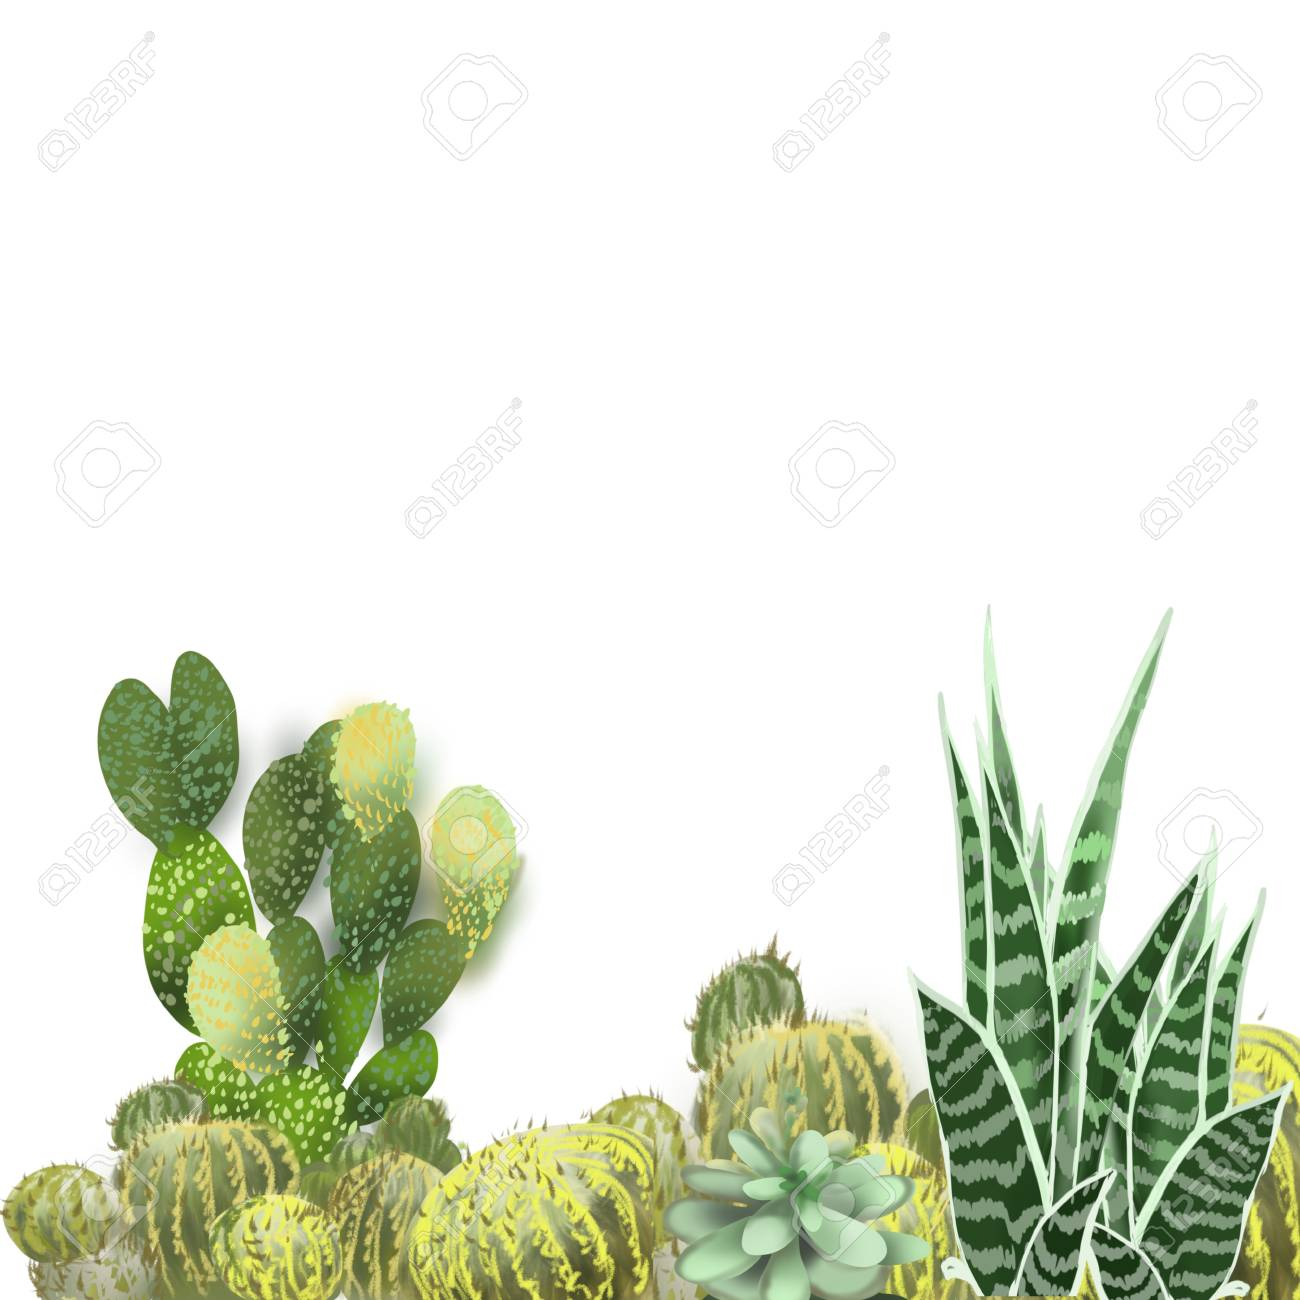 Cactus Grouping Hand Drawn Original Painted Artwork Border Background Stock Photo Picture And Royalty Free Image Image 105088640